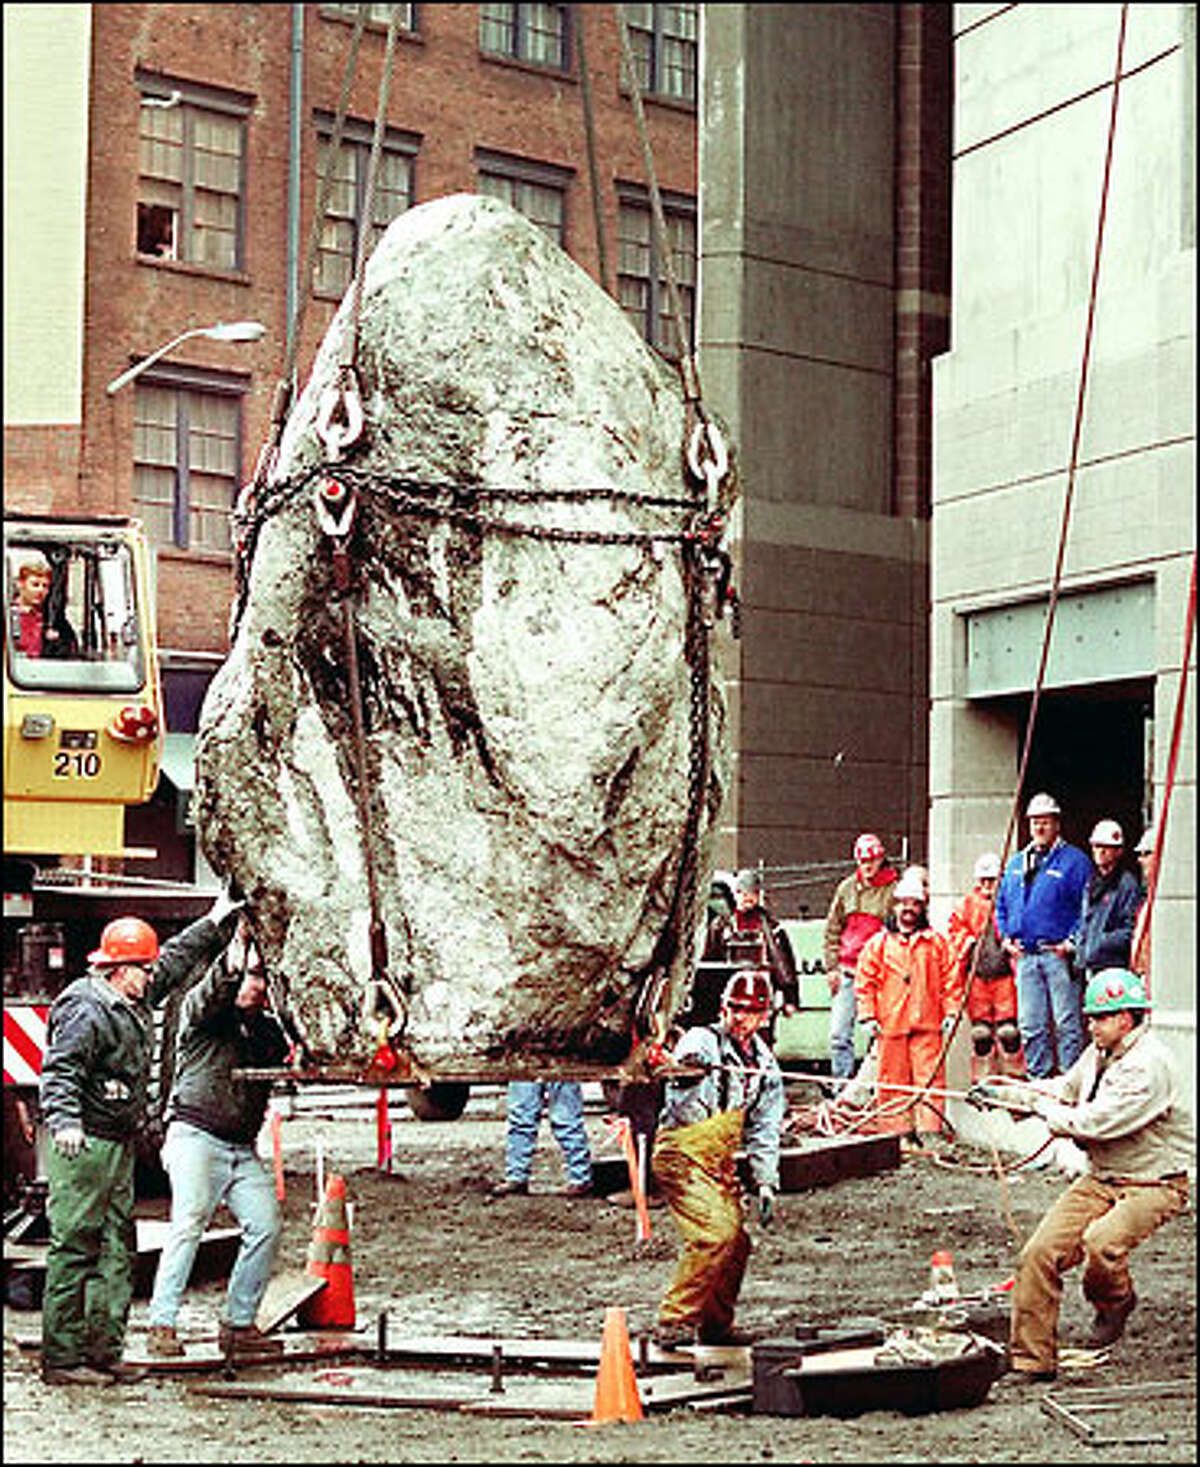 A granite boulder that weighs considerably more than 16 tons is lowered by crane to the west plaza of the new Washington State Football/Soccer Stadium. The 36-ton boulder is half of